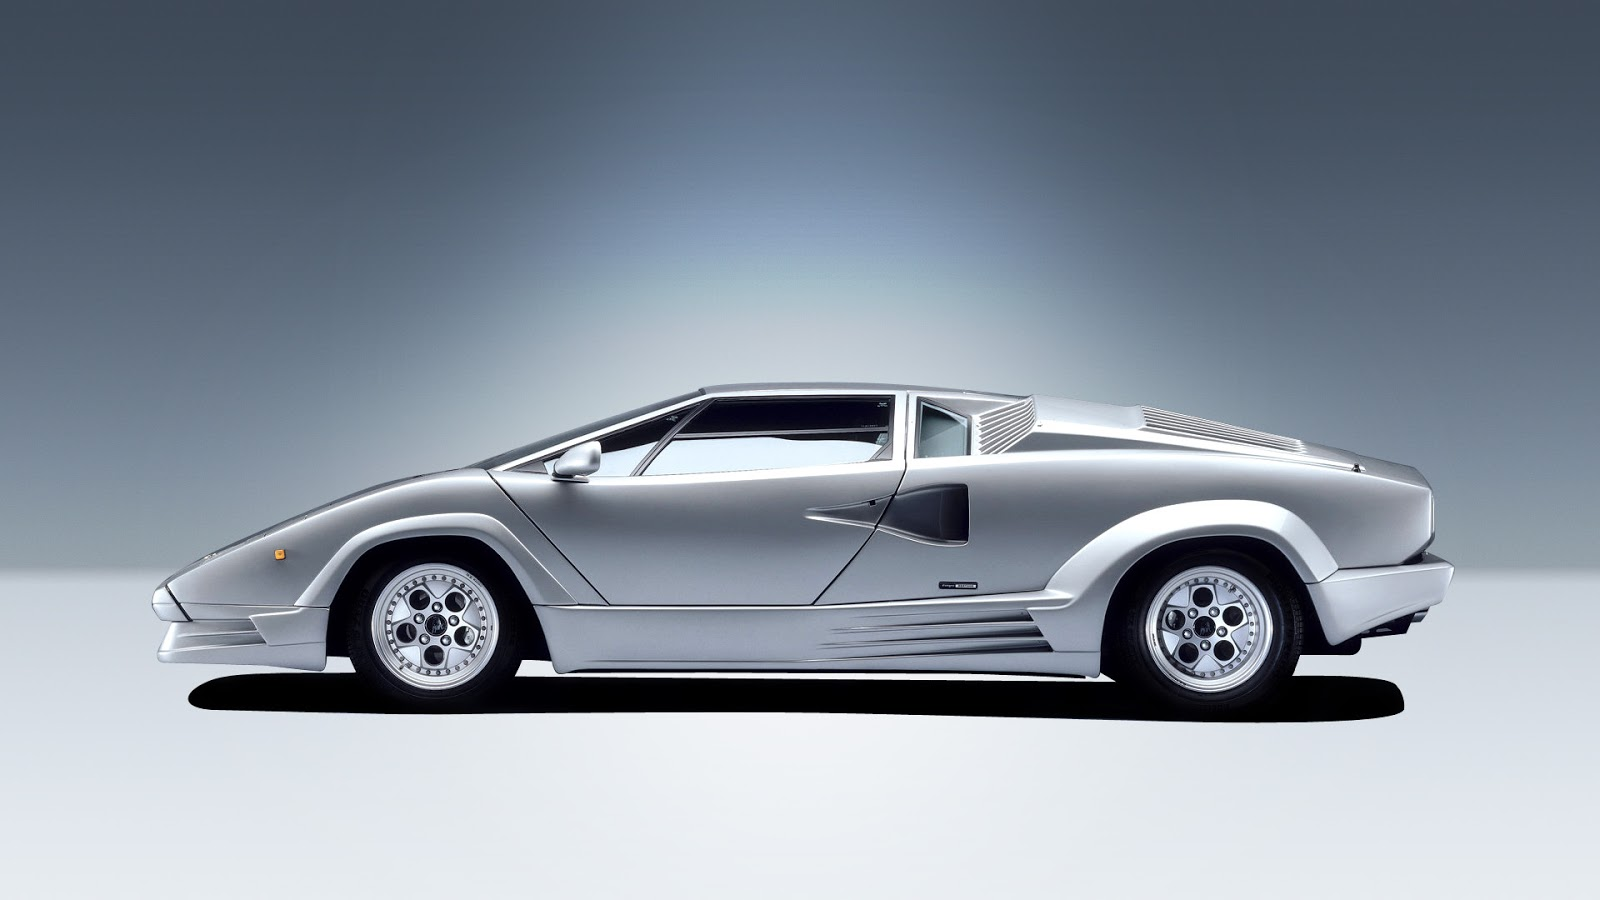 Luxury Lamborghini Cars Lamborghini Countach Wallpaper